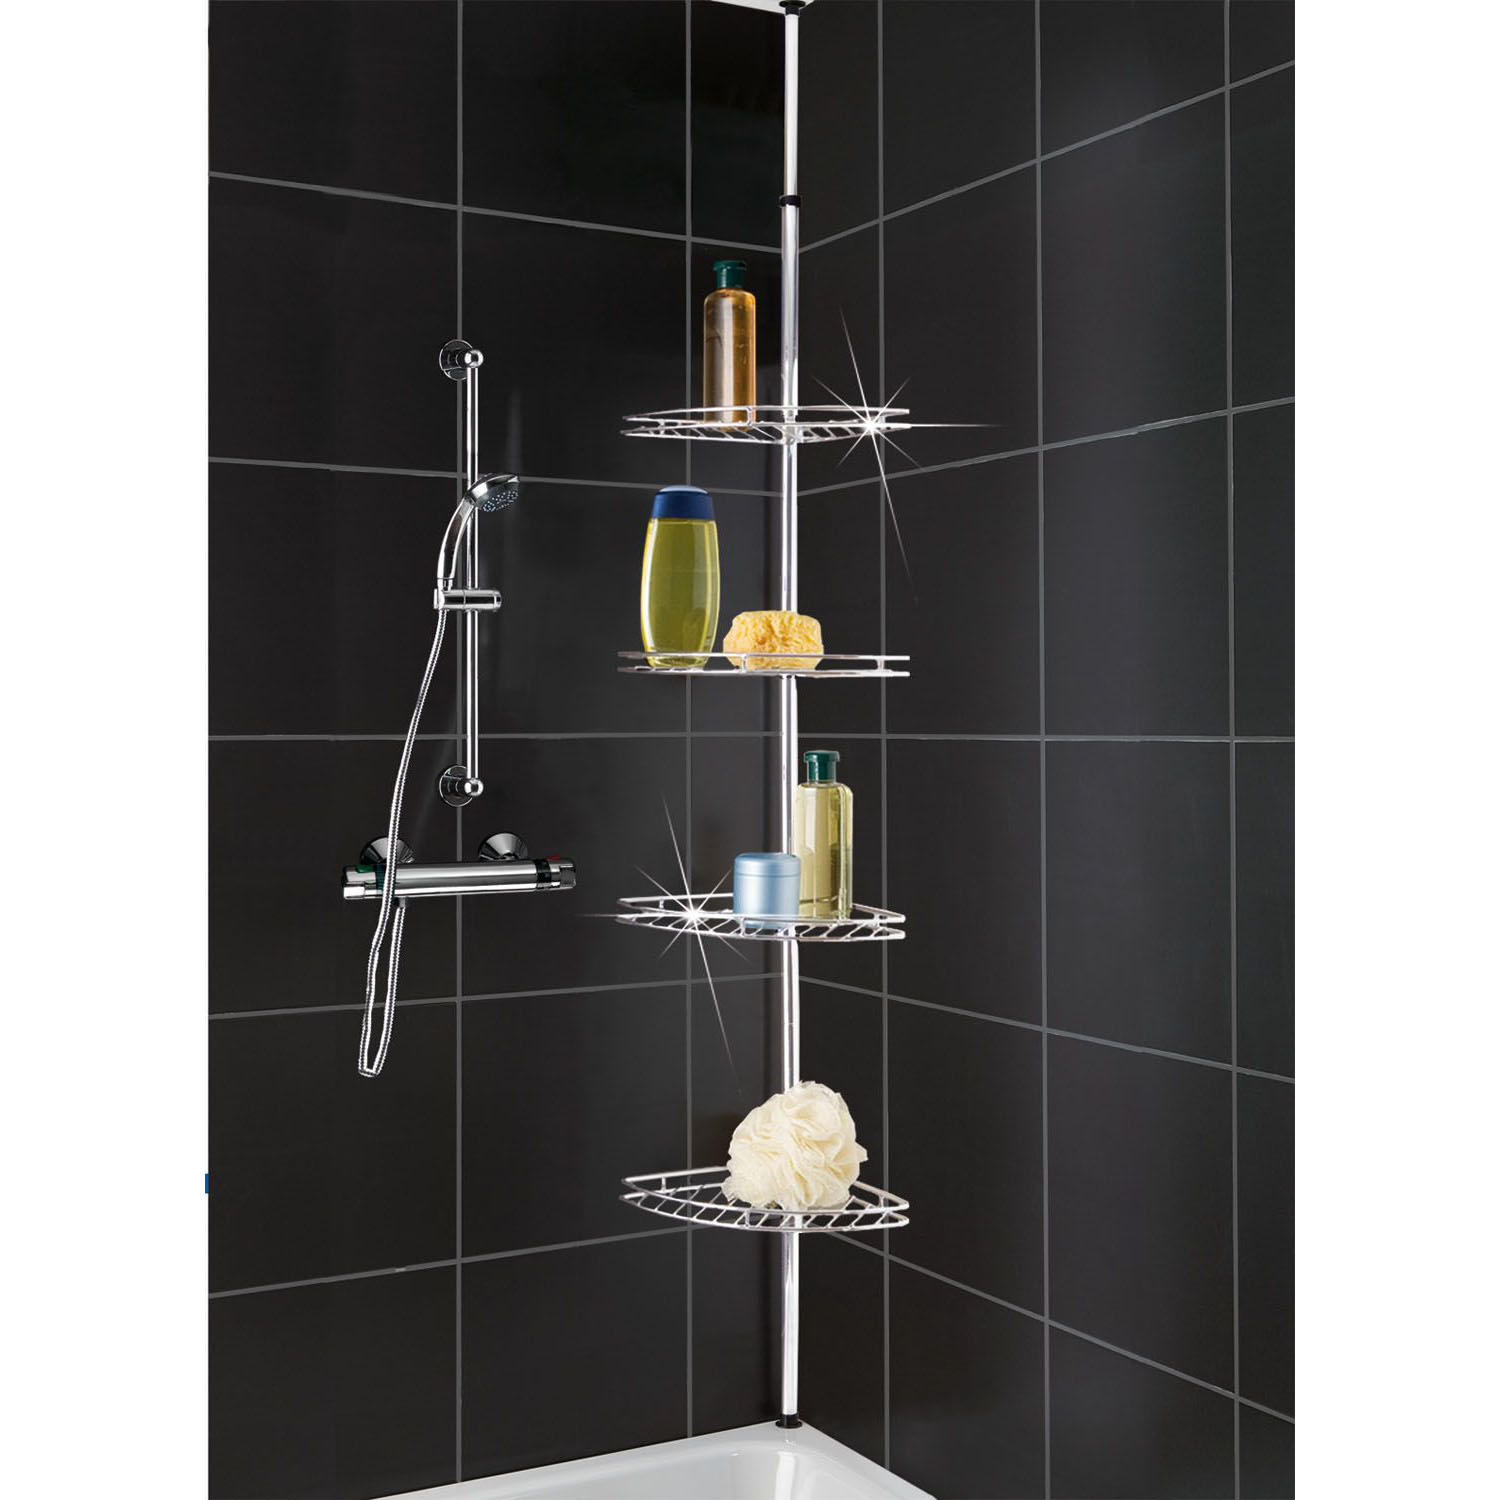 Bathroom wall storage baskets - Corner Shelf Storage Baskets Related Keywords Suggestions Corner